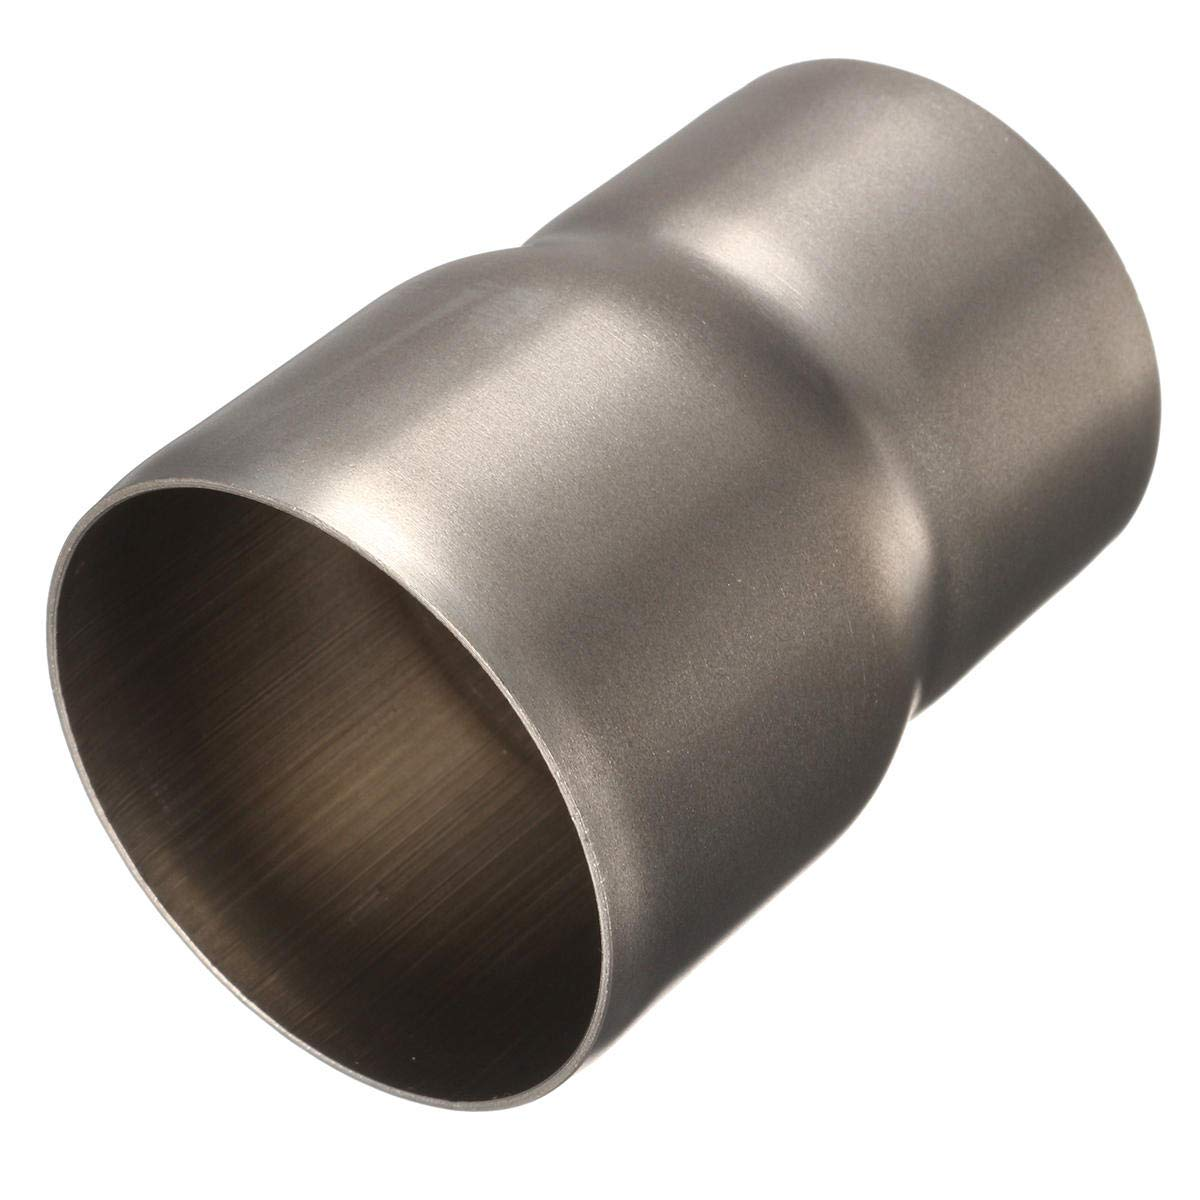 60mm to 51mm Motorcycle Mild Steel Exhaust Muffler Adapter Reducer Connector Pipe Tube Unbekannt